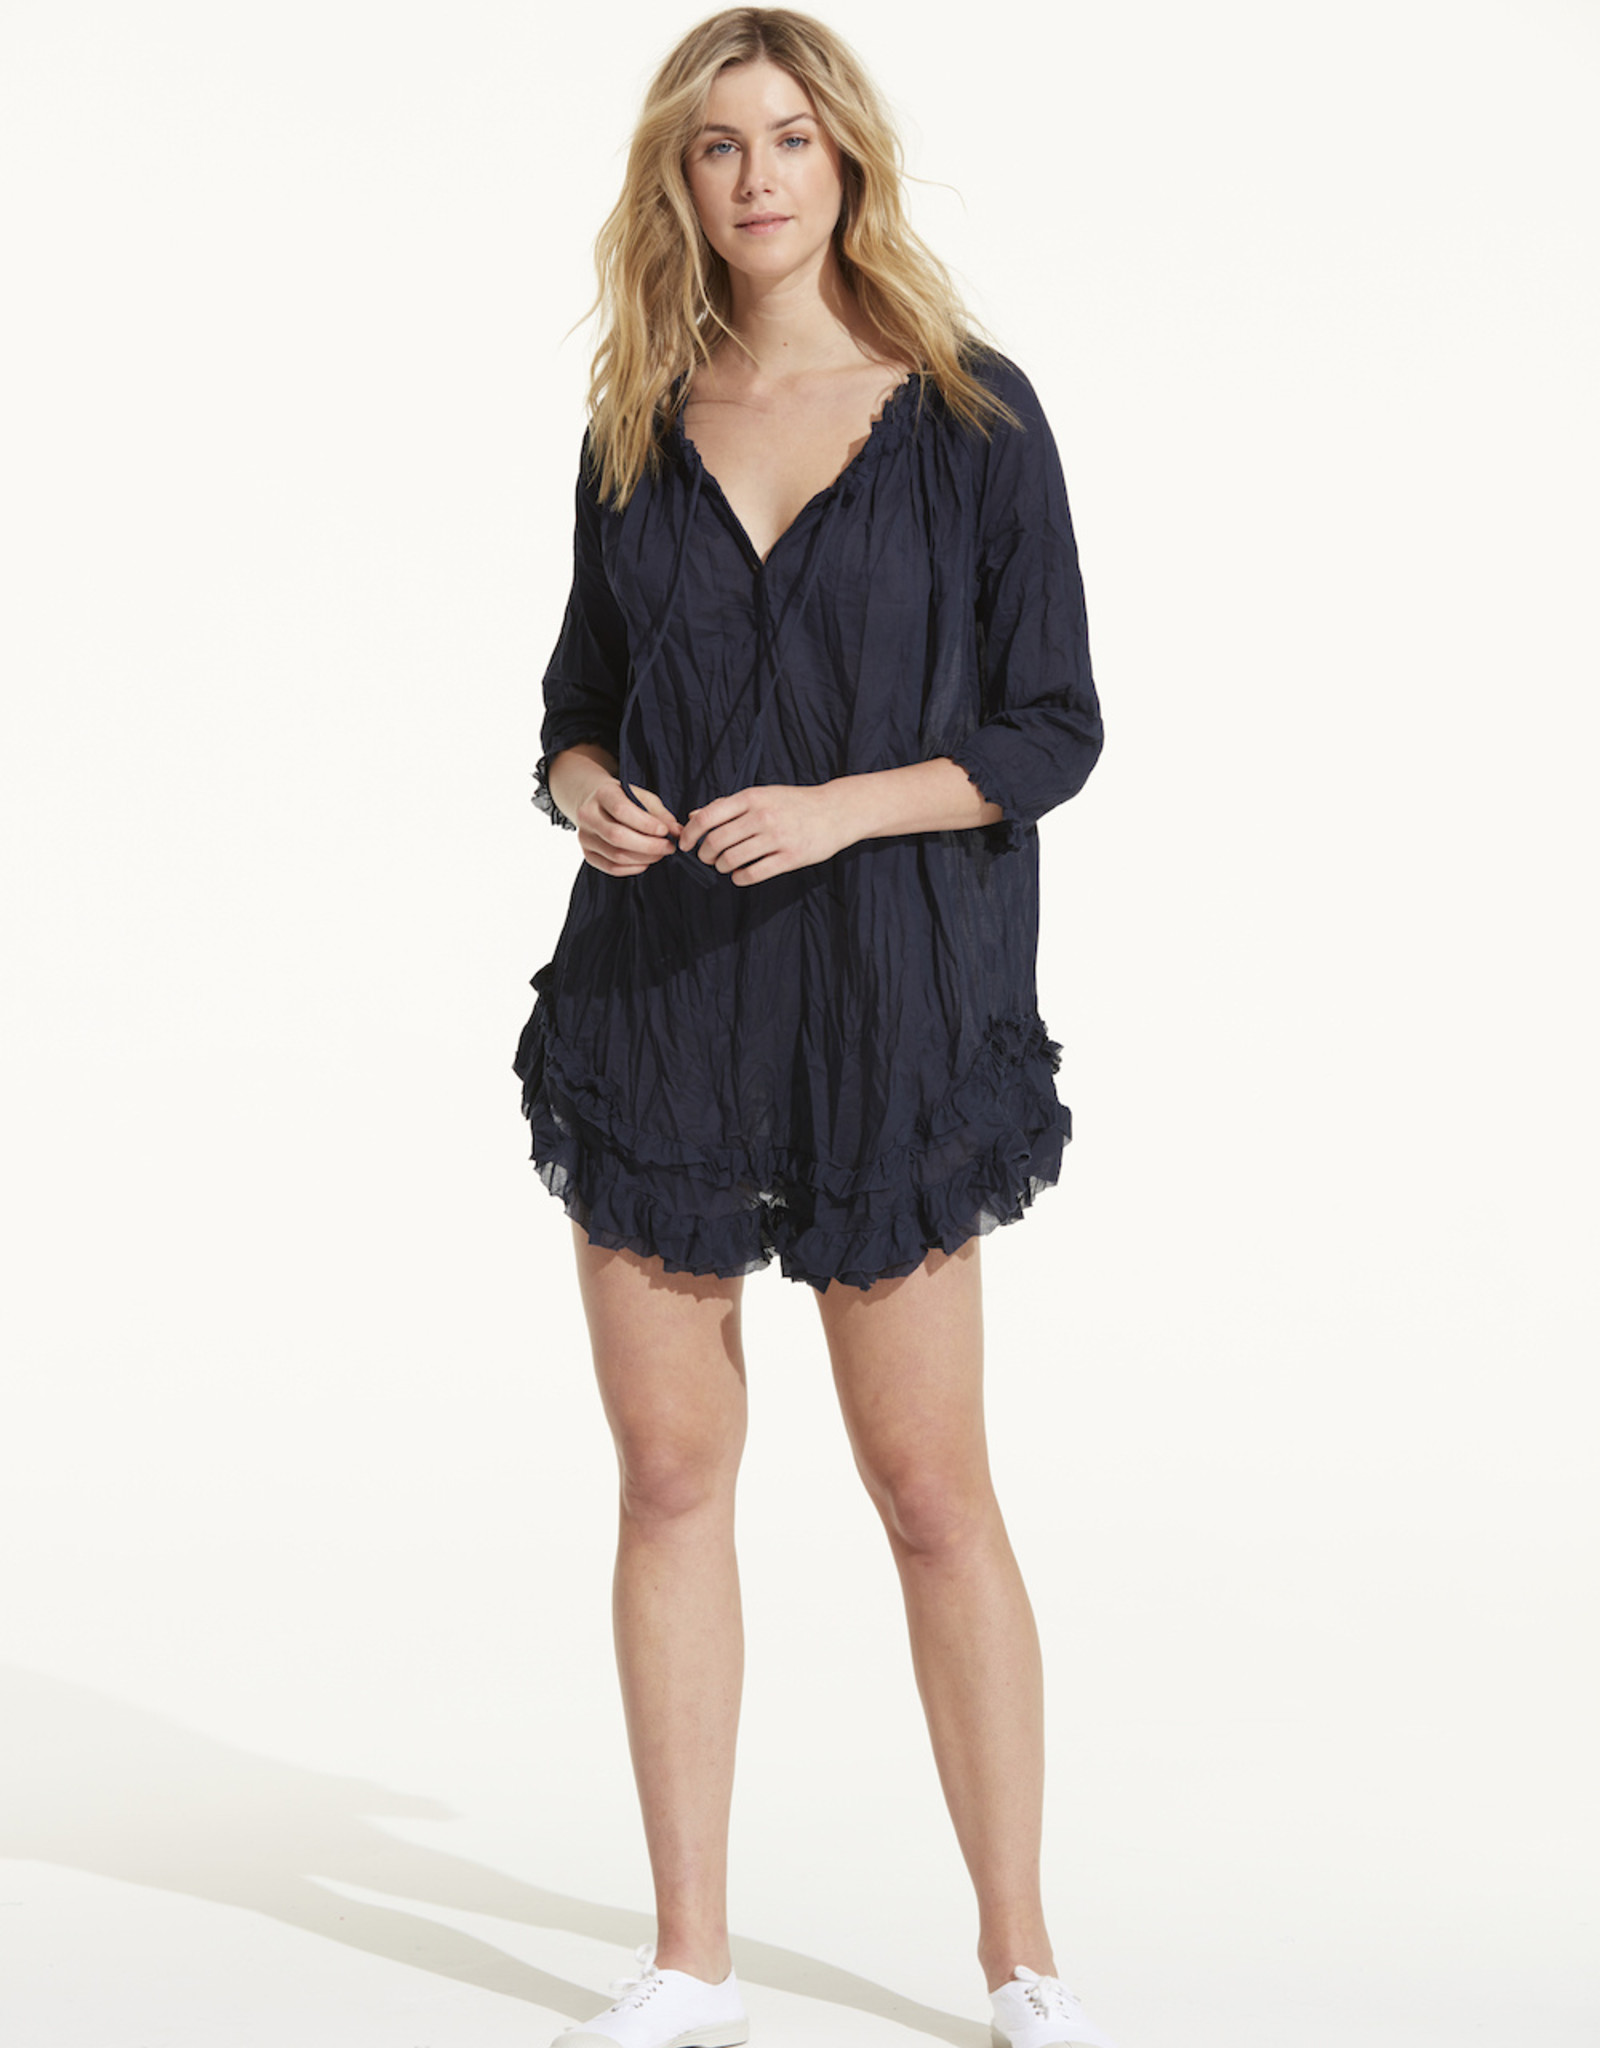 SALE - ONESEASON FRILLY EMBROIDERIES NAVY